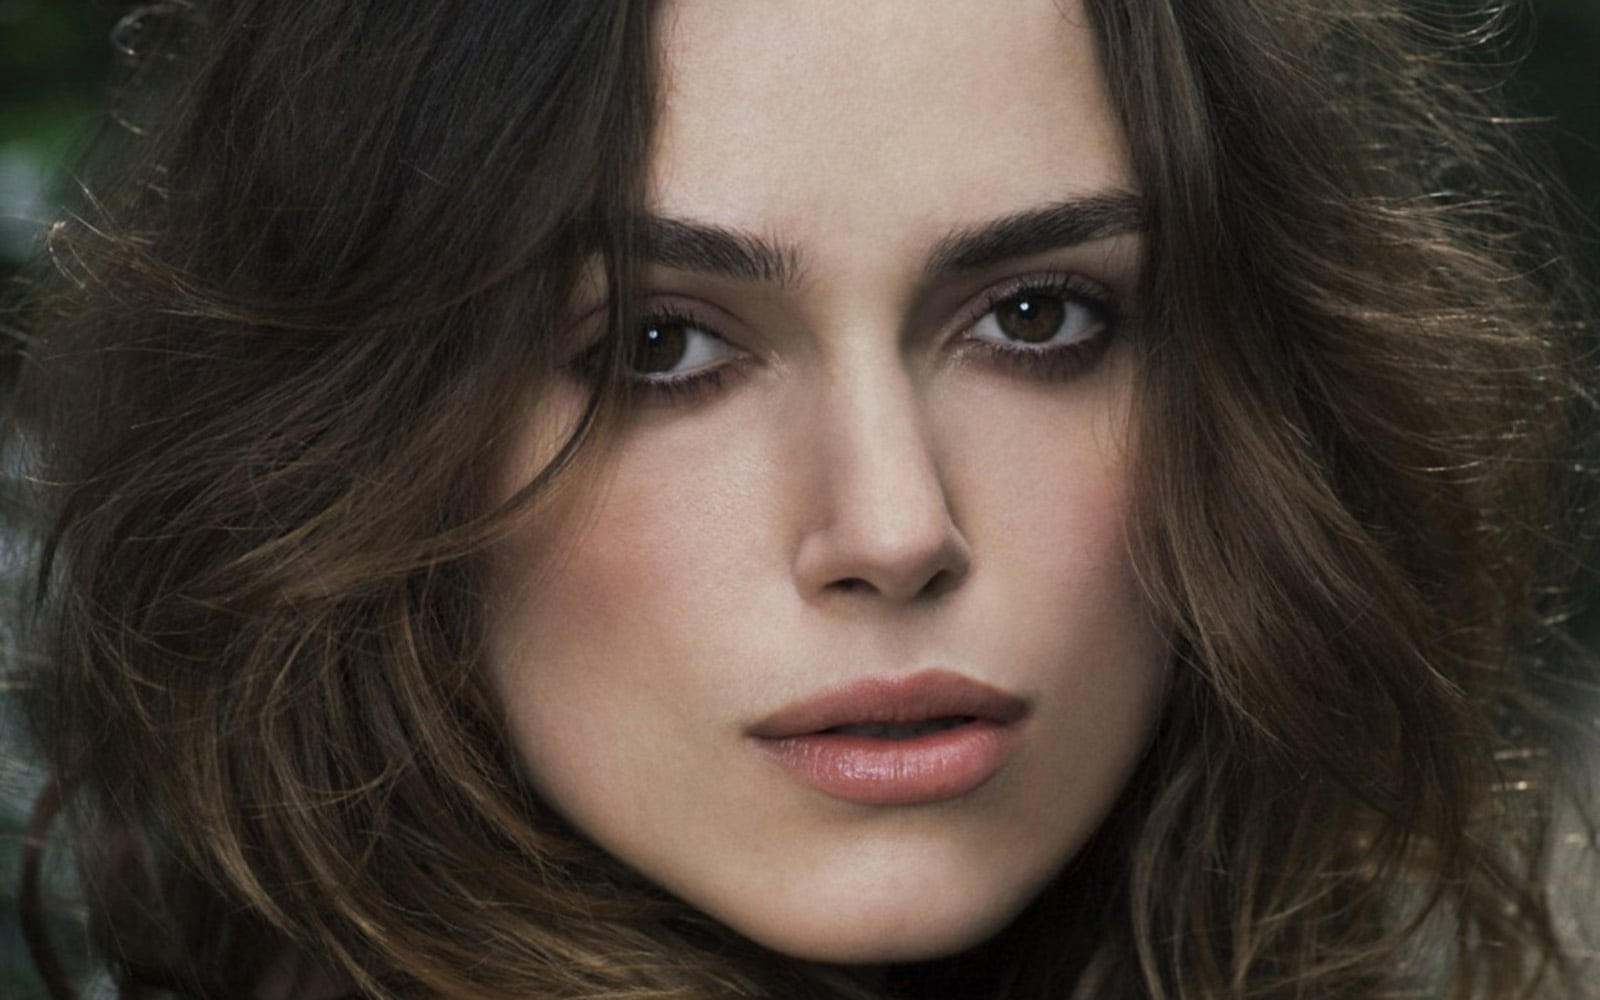 Pics of Keira Knightley face